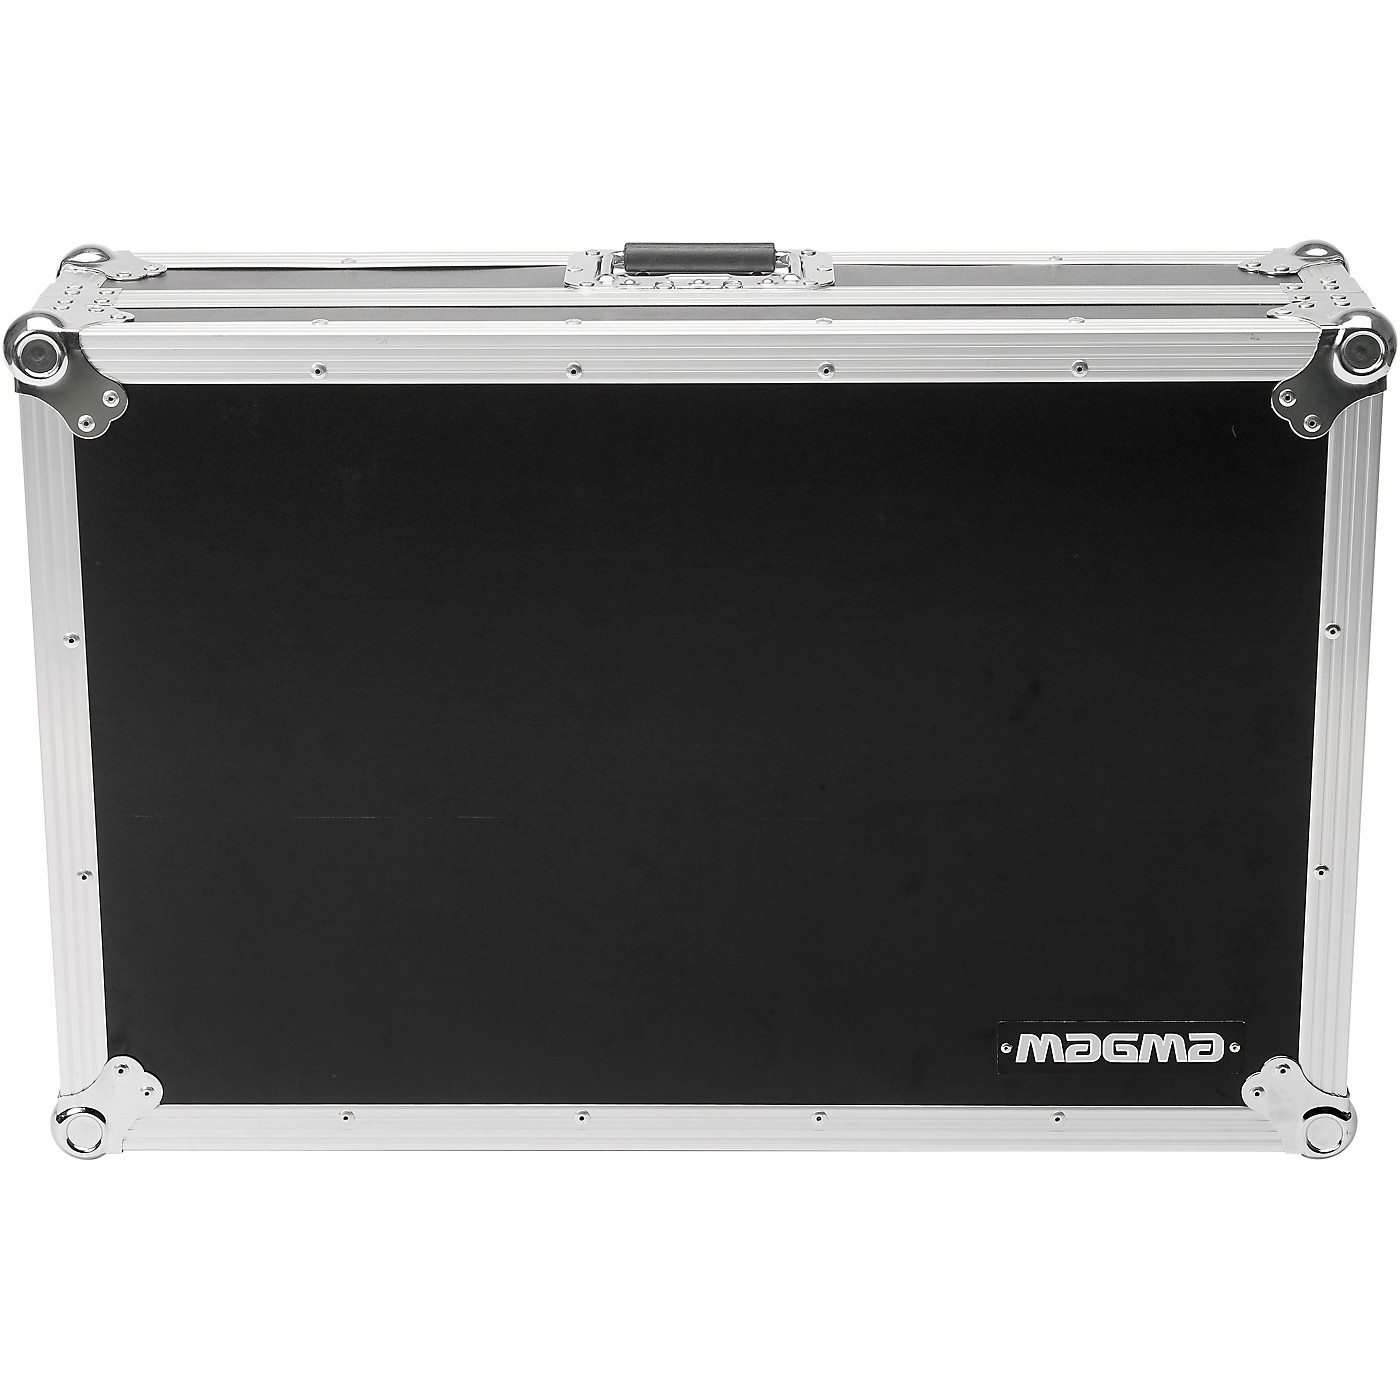 Magma Cases Pioneer XDJRX DJ Controller Workstation Case thumbnail